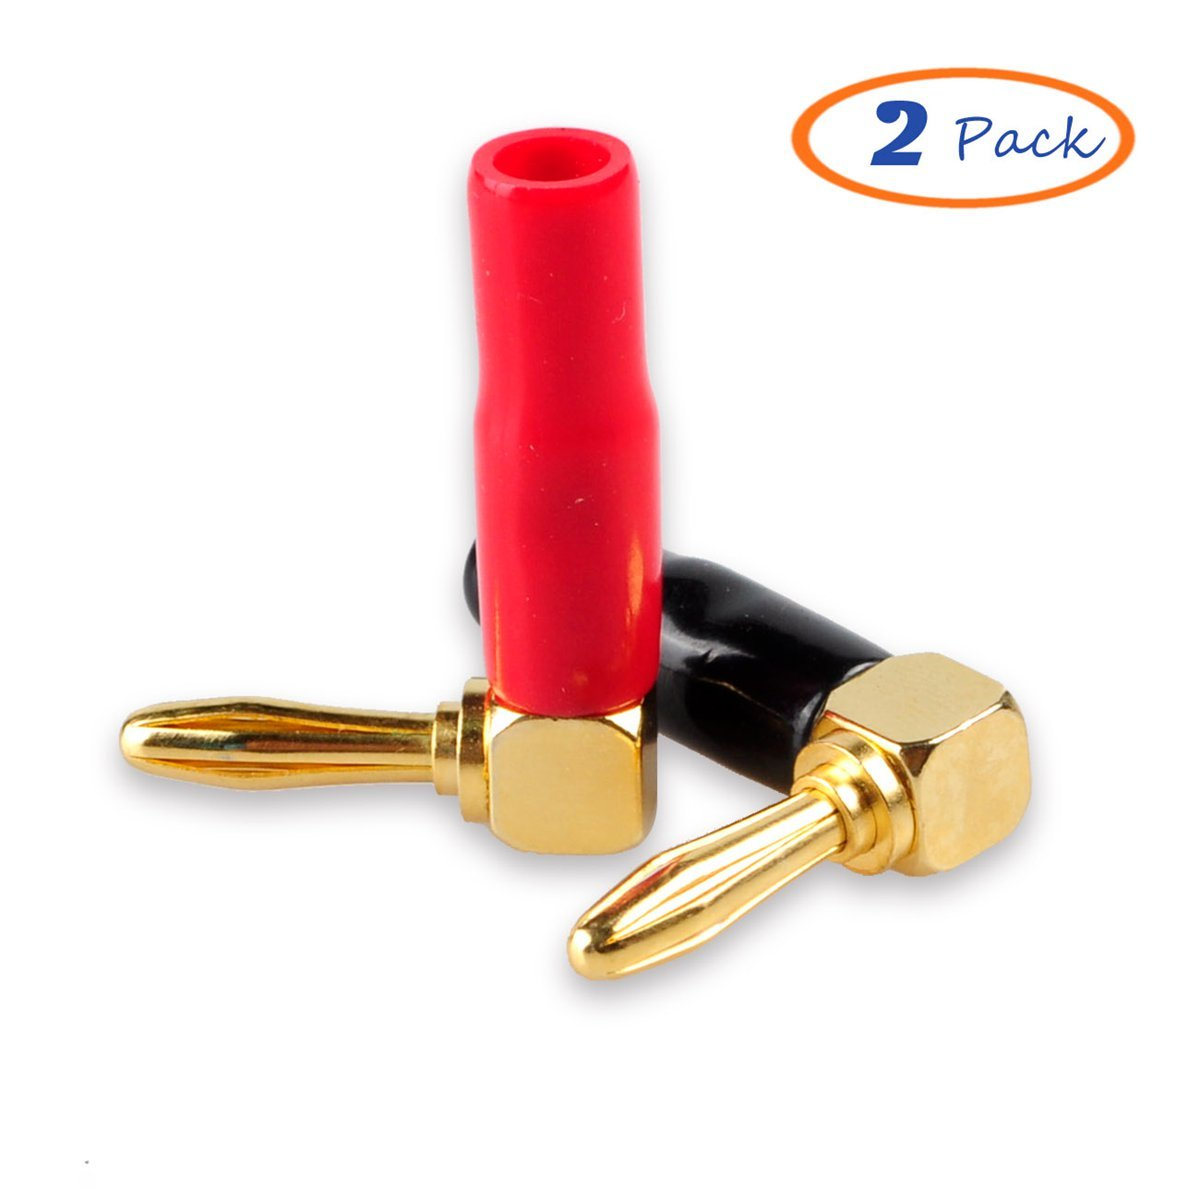 2 Black + 2 Red HoGadget 2 Pair 4mm Banana Plugs Screw Type Banana Plug 90 Degree Right Angle Speaker Cable Connector Copper Gold Plated